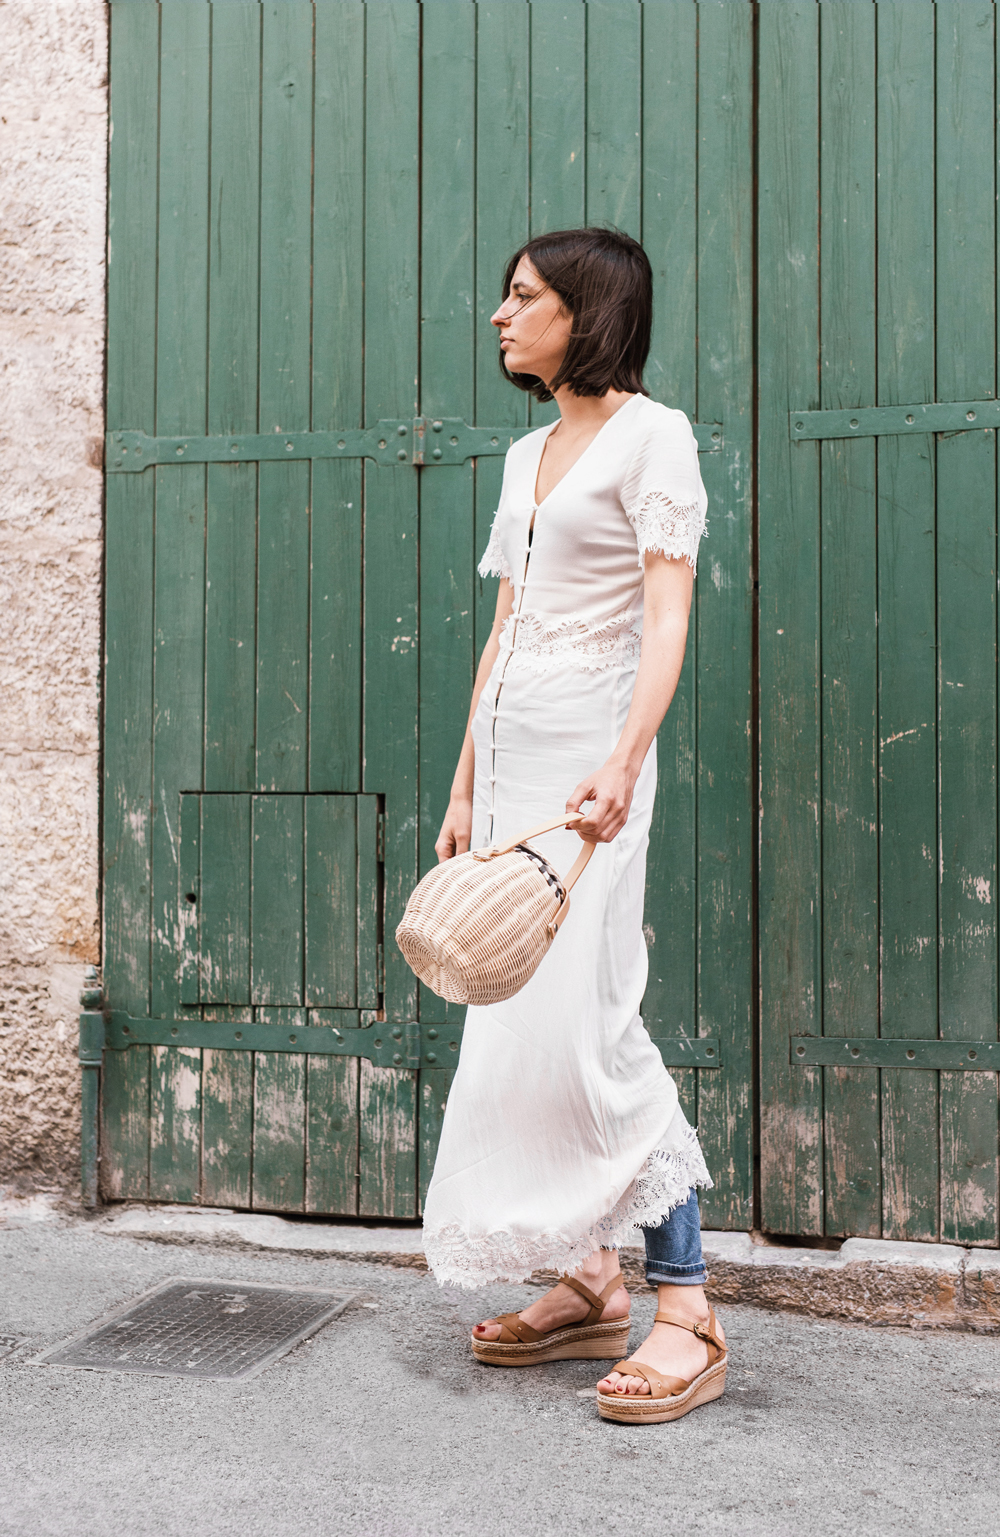 Summer outfit: The dress-over-jeans trend